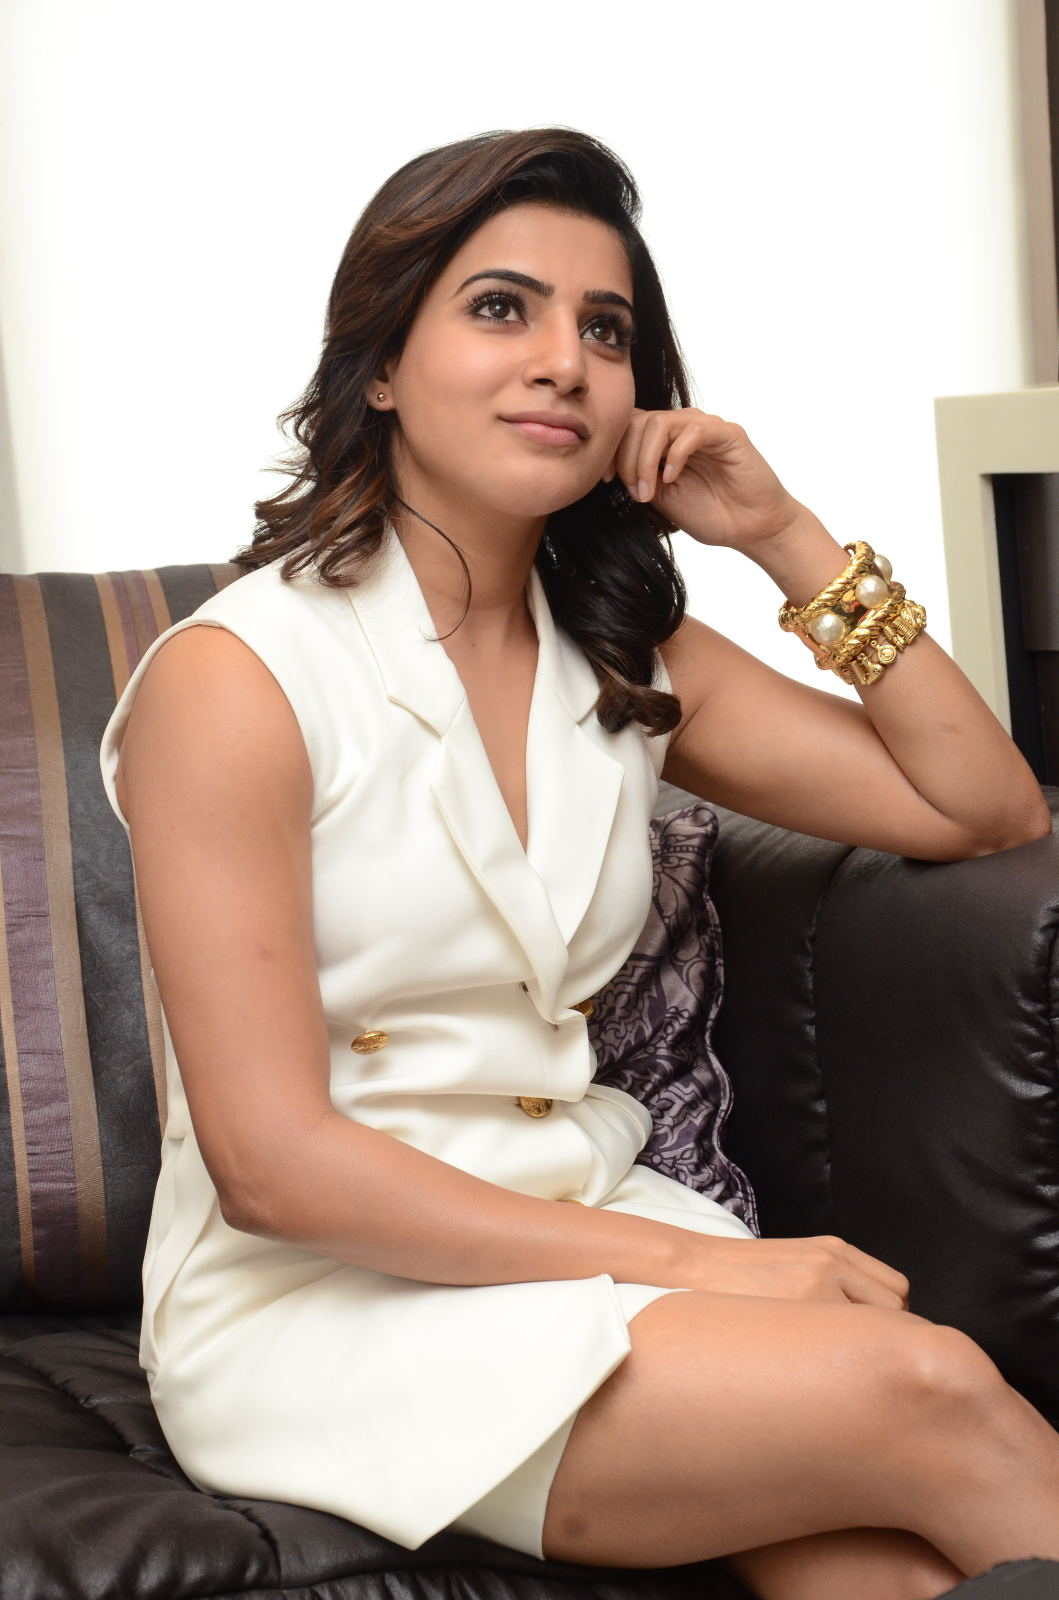 samantha ruth prabhu pictures: samantha thigh show photos